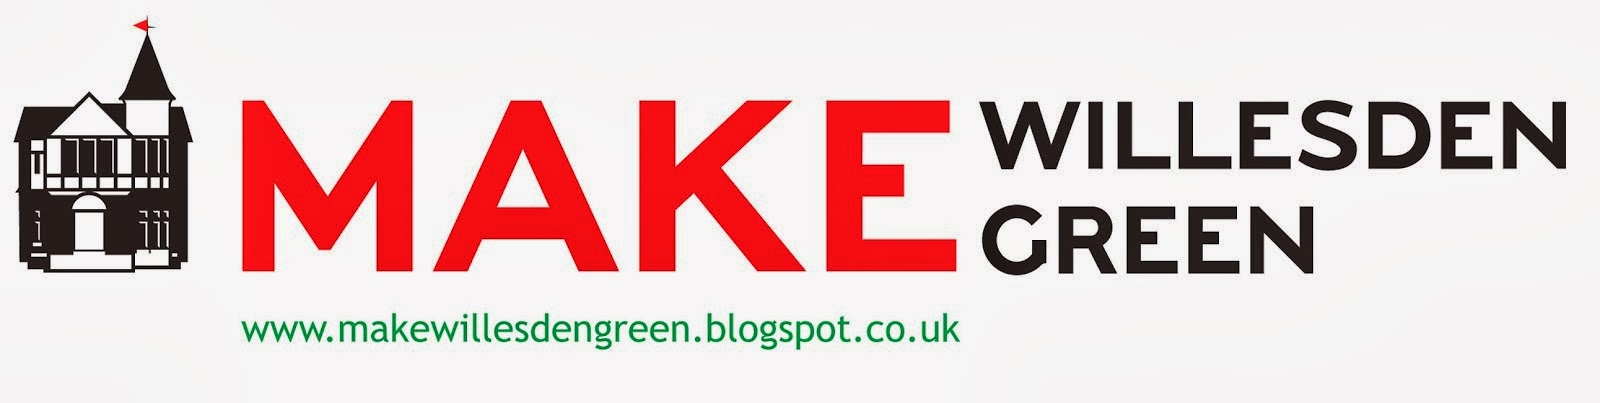 Make Willesden Green